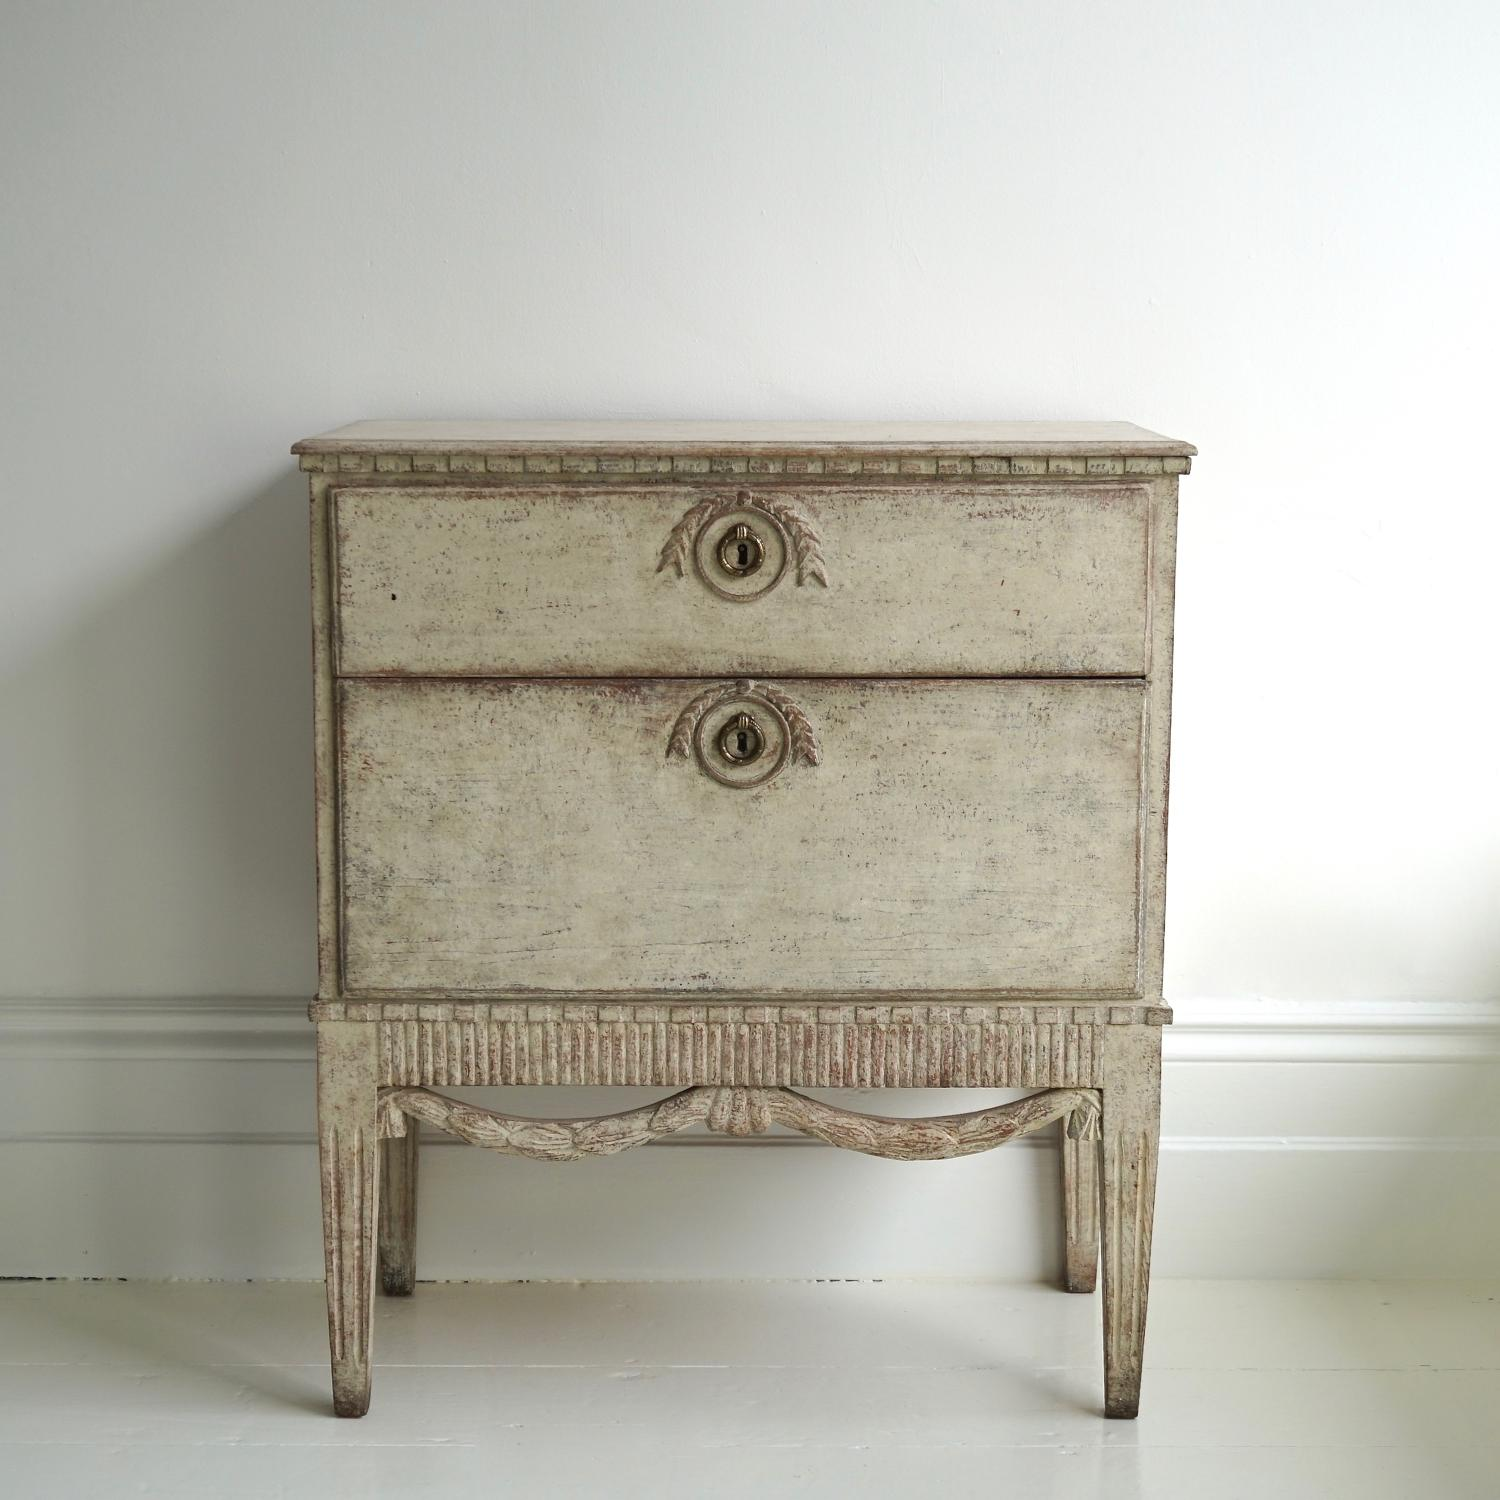 EXCEPTIONAL GUSTAVIAN STYLE BEDSIDE CHEST